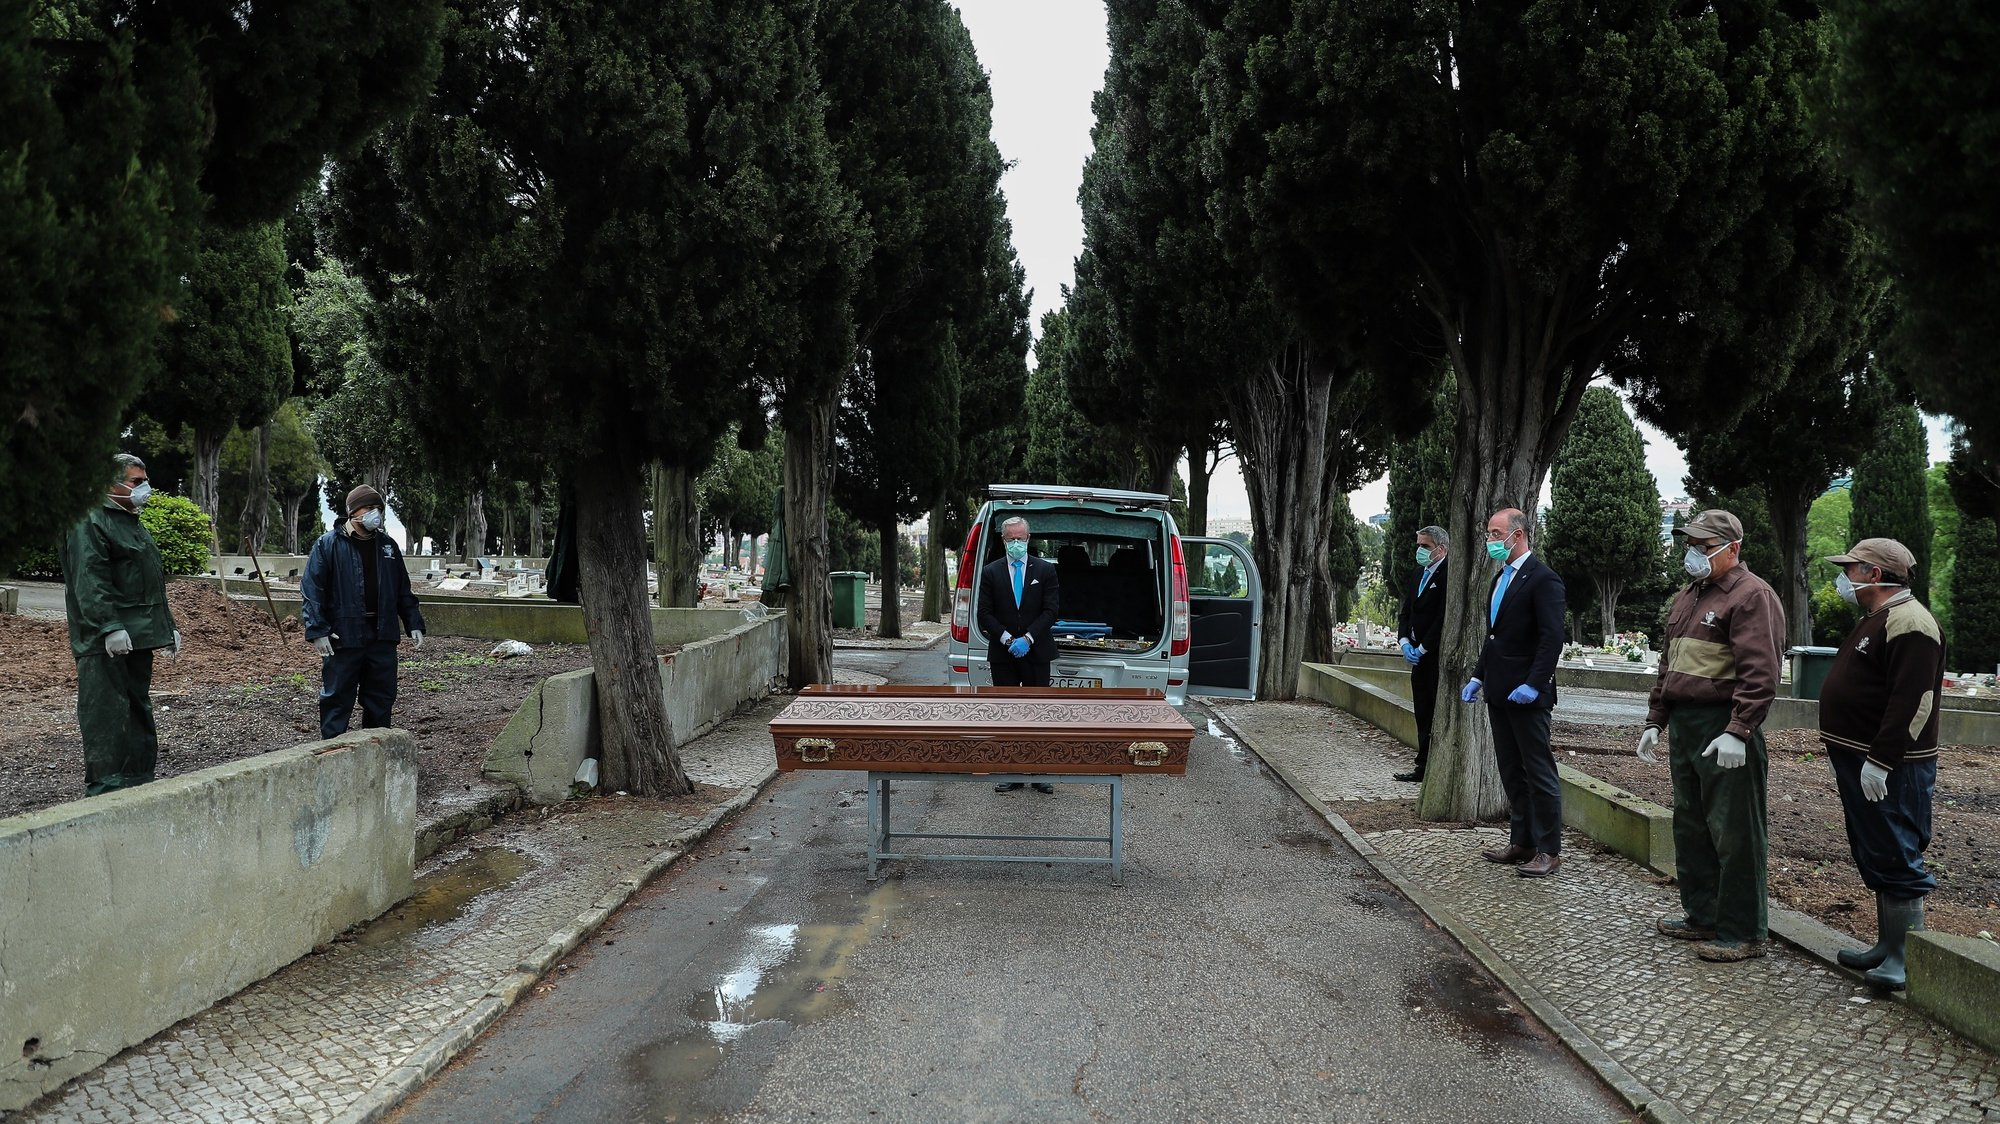 epa08347884 Employees of a funeral home and gravediggers at Benfica cemetery wearing protective masks pay respect to a woman about 30 years old who died of cancer, during the funeral ceremony, in Lisbon, Portugal, 01 April 2020 (Issued 07 April 2020). Portugal is in state of emergency until 17 April 2020. Countries around the world are taking increased measures to stem the widespread of the SARS-CoV-2 coronavirus which causes the Covid-19 disease.  EPA/MIGUEL A. LOPES  ATTENTION: This Image is part of a PHOTO SET